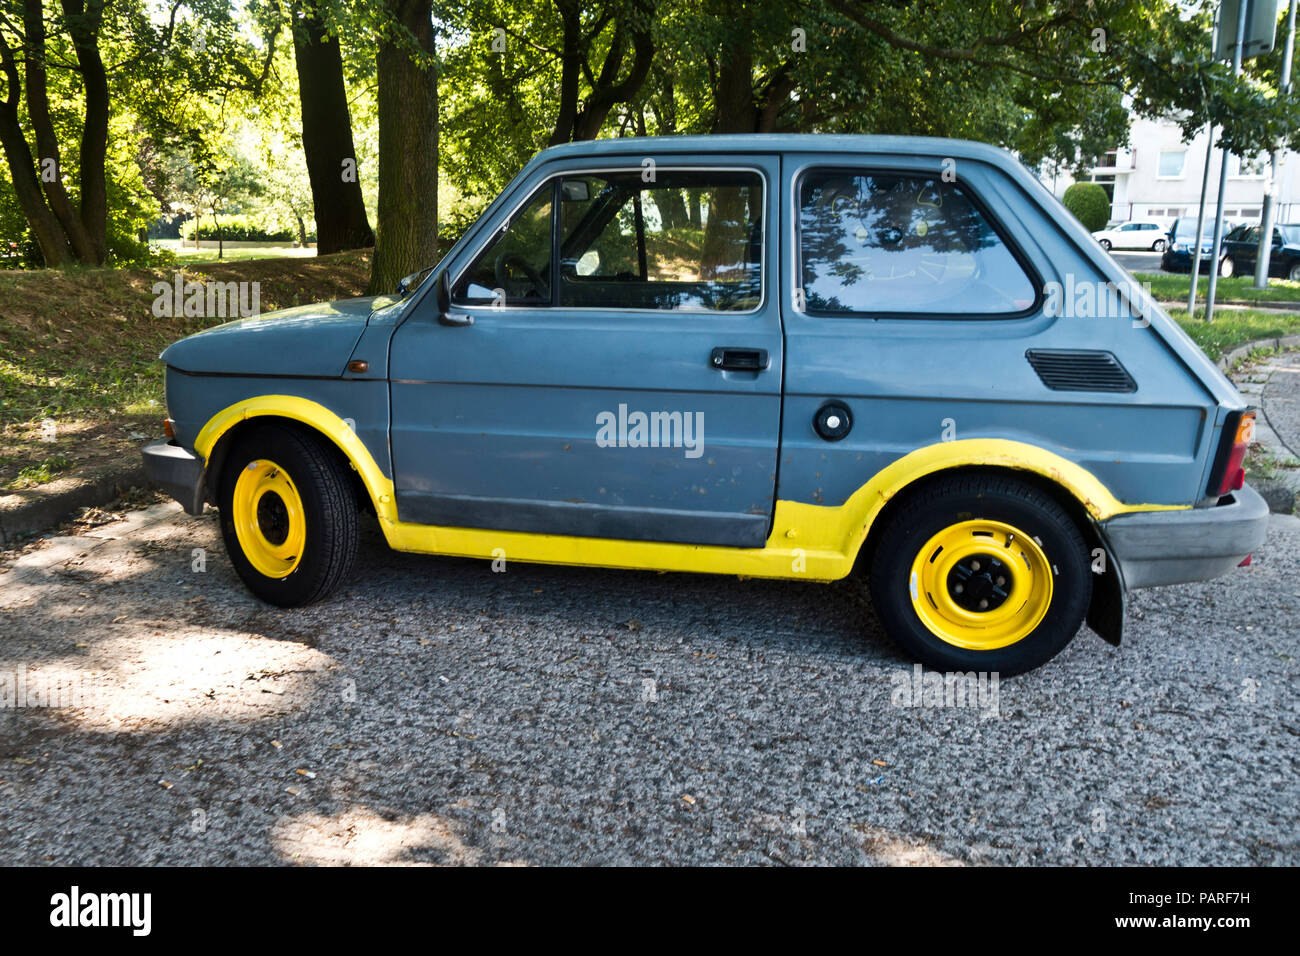 Fiat 126 car in color grey and yellow - Stock Image